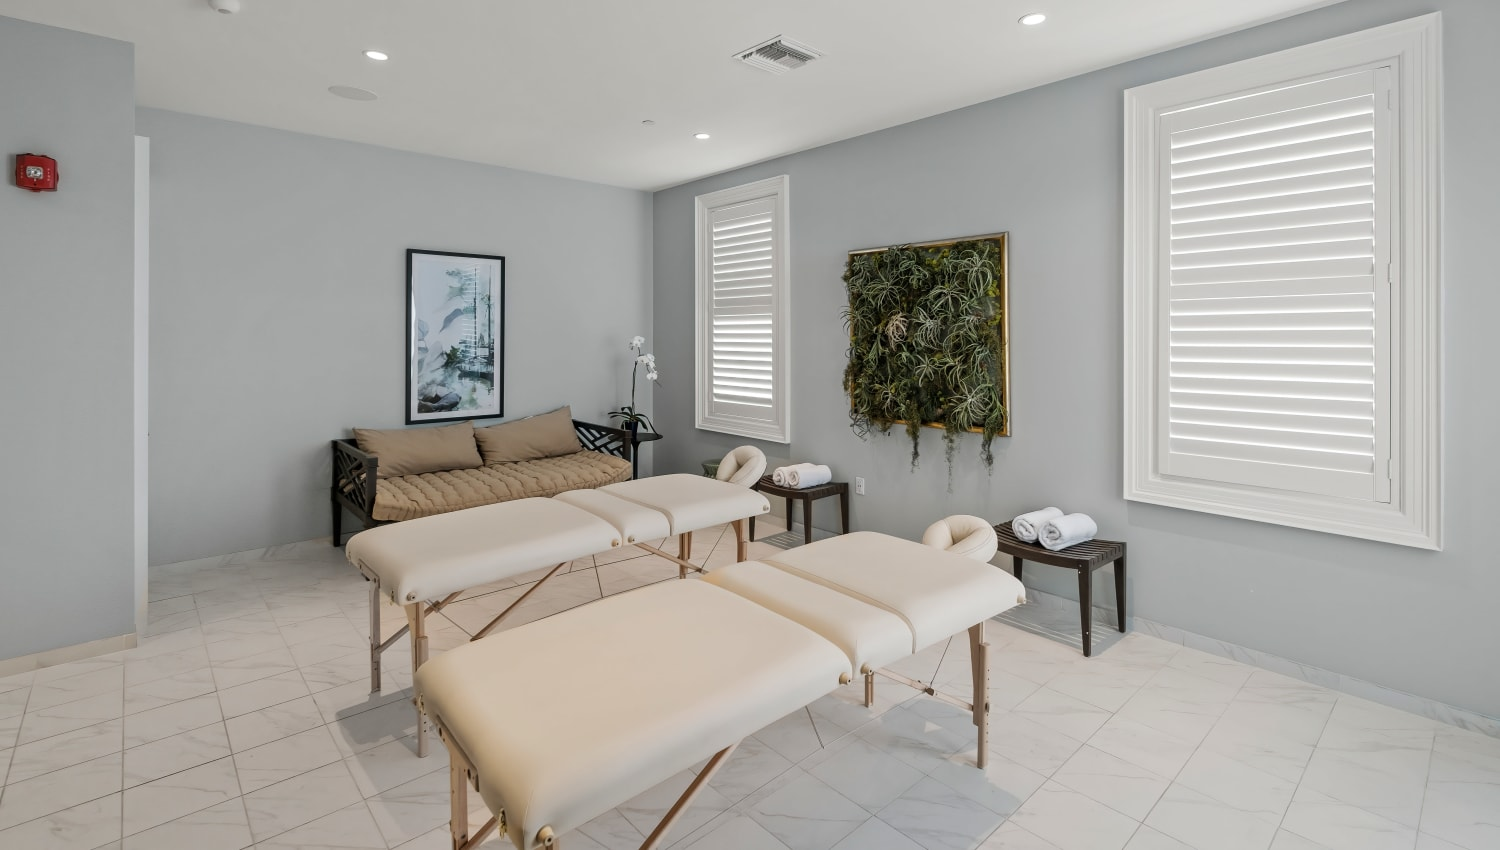 Massage tables in the private spa at Town Lantana in Lantana, Florida